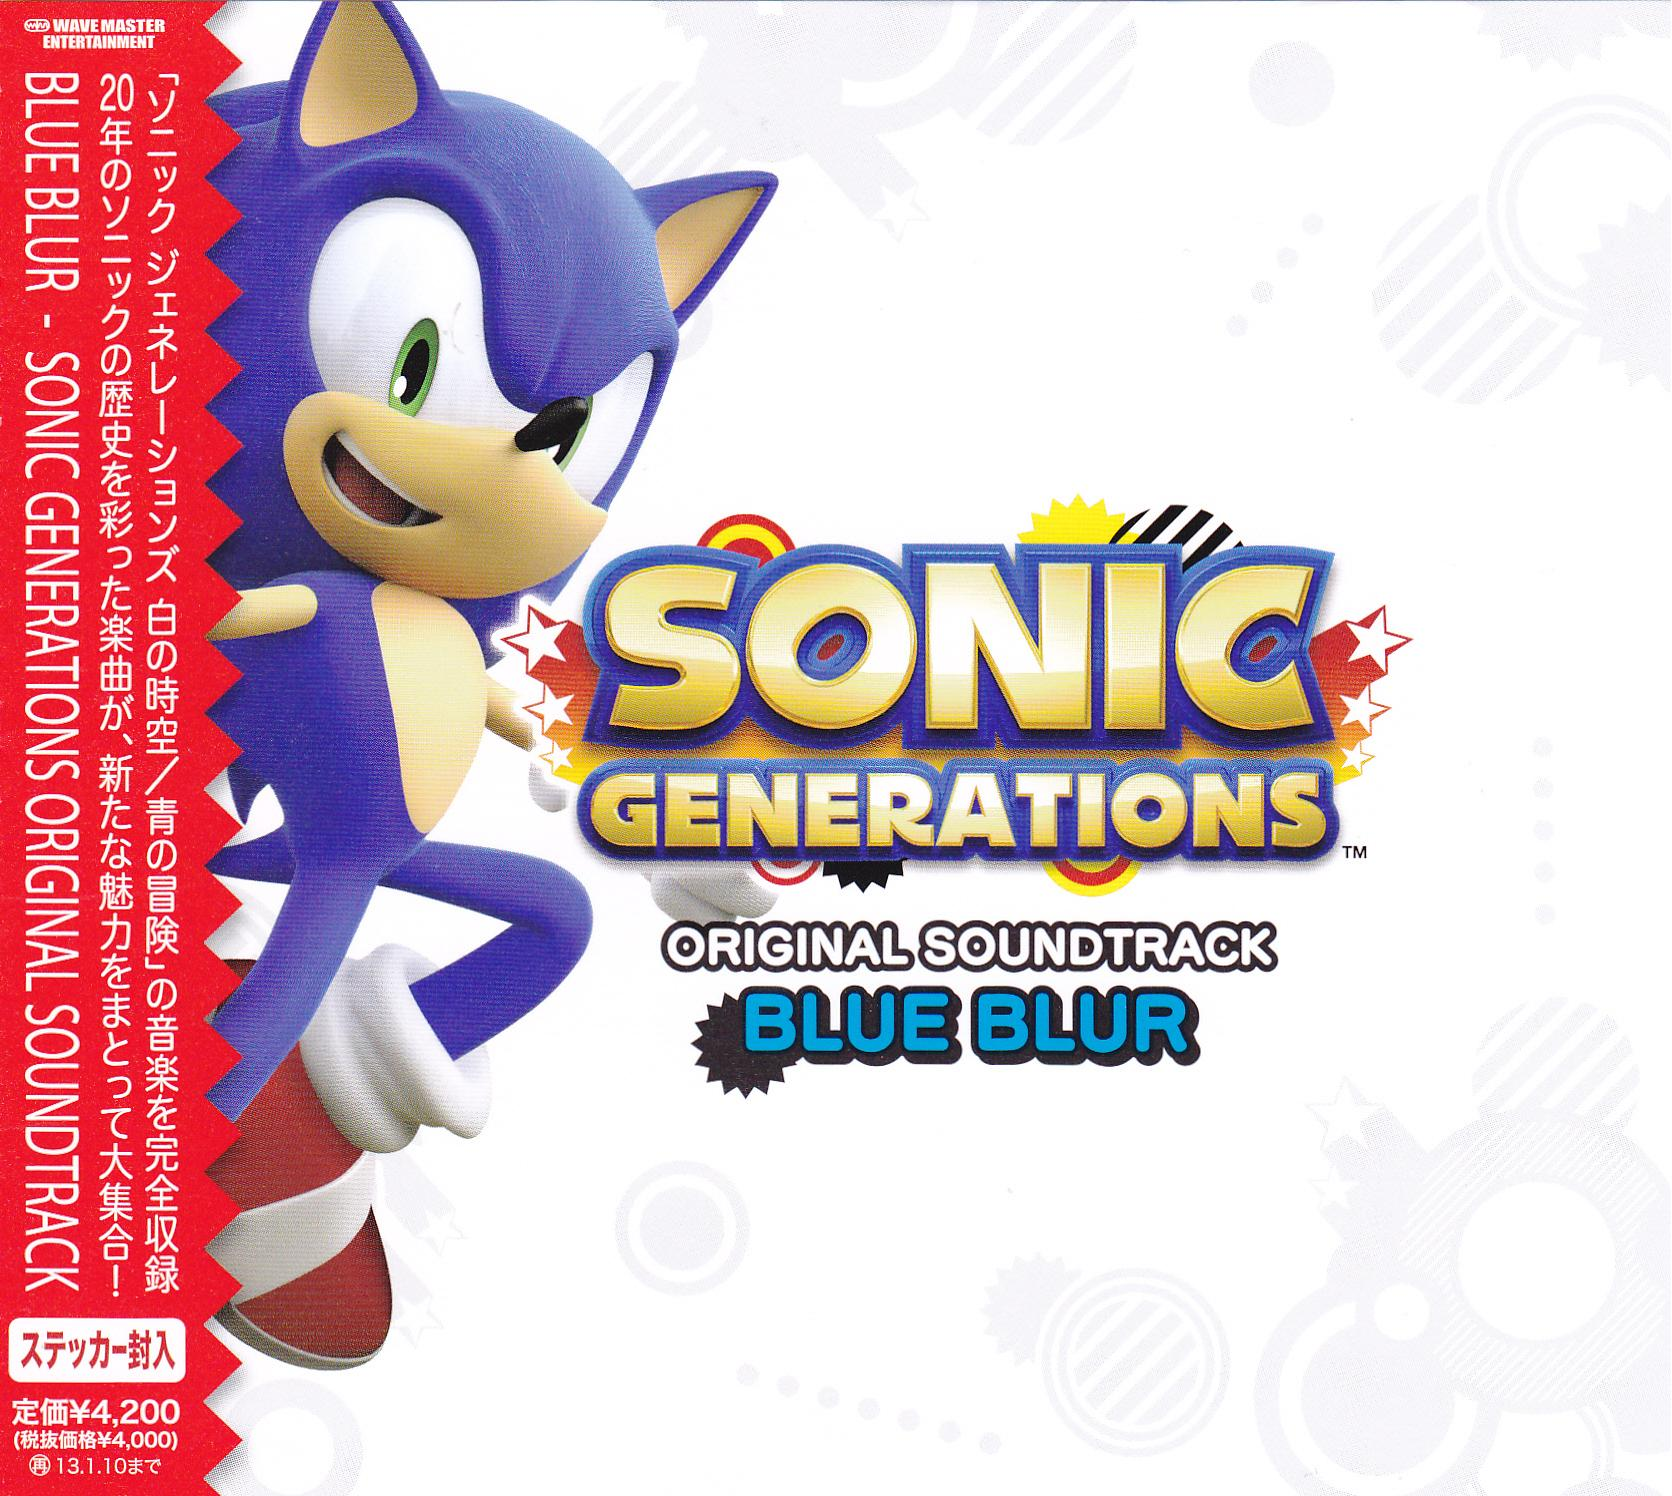 Soundtrack Review – Sonic Generations: Blue Blur & Anniversary Releases